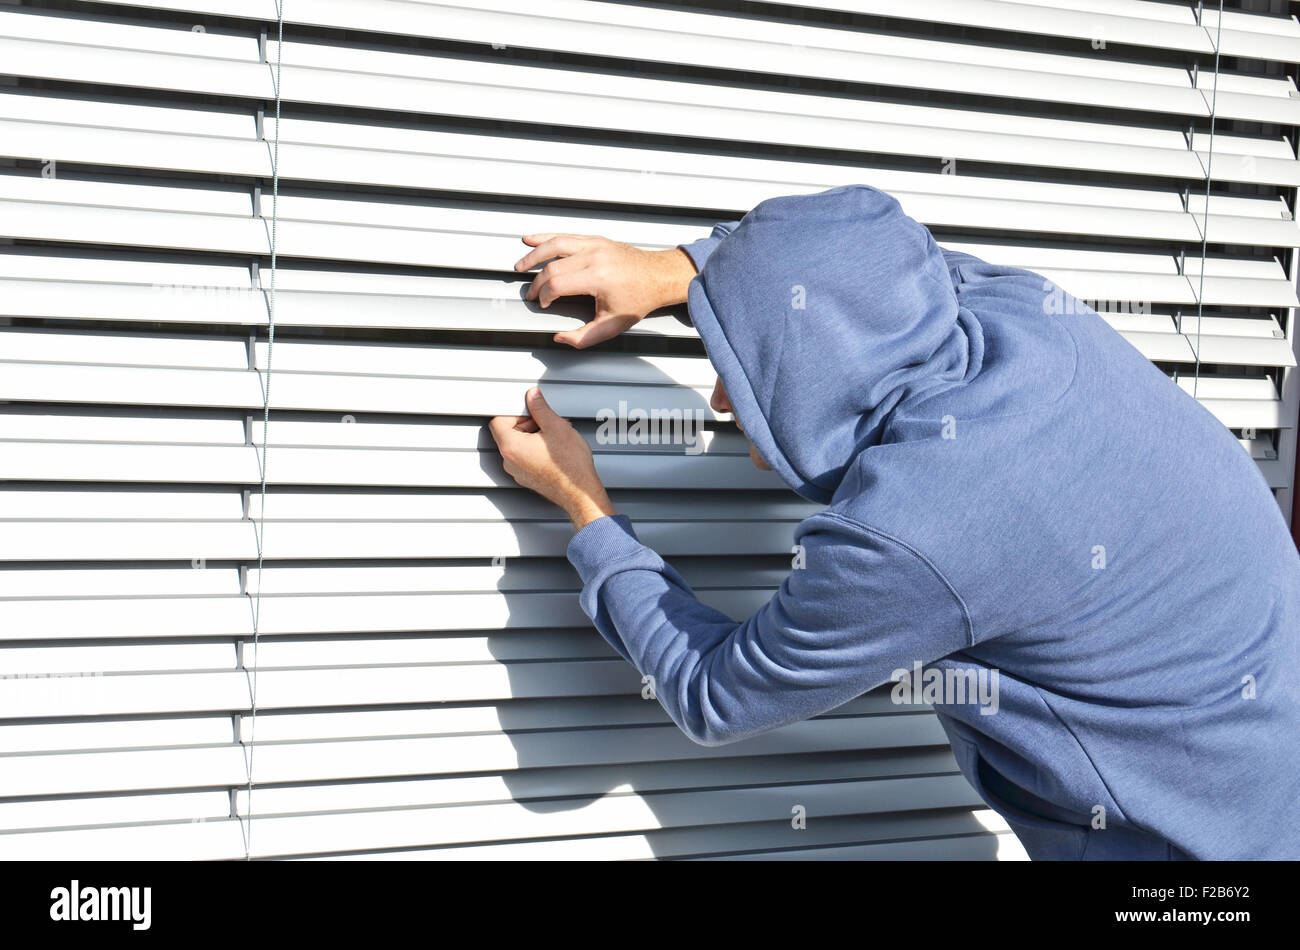 Thief at the window - Stock Image